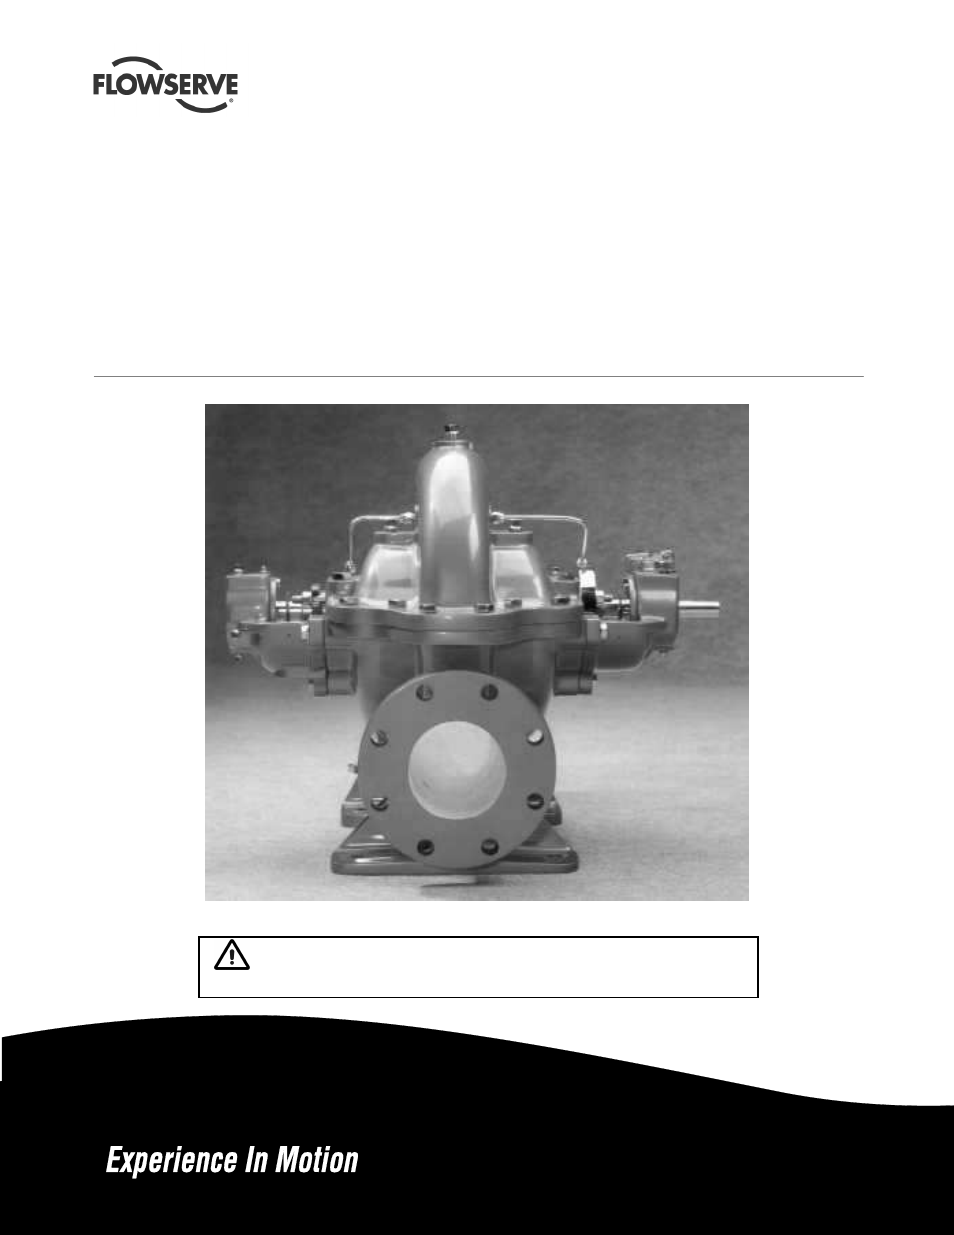 Flowserve LR Worthington User Manual | 48 pages | Also for